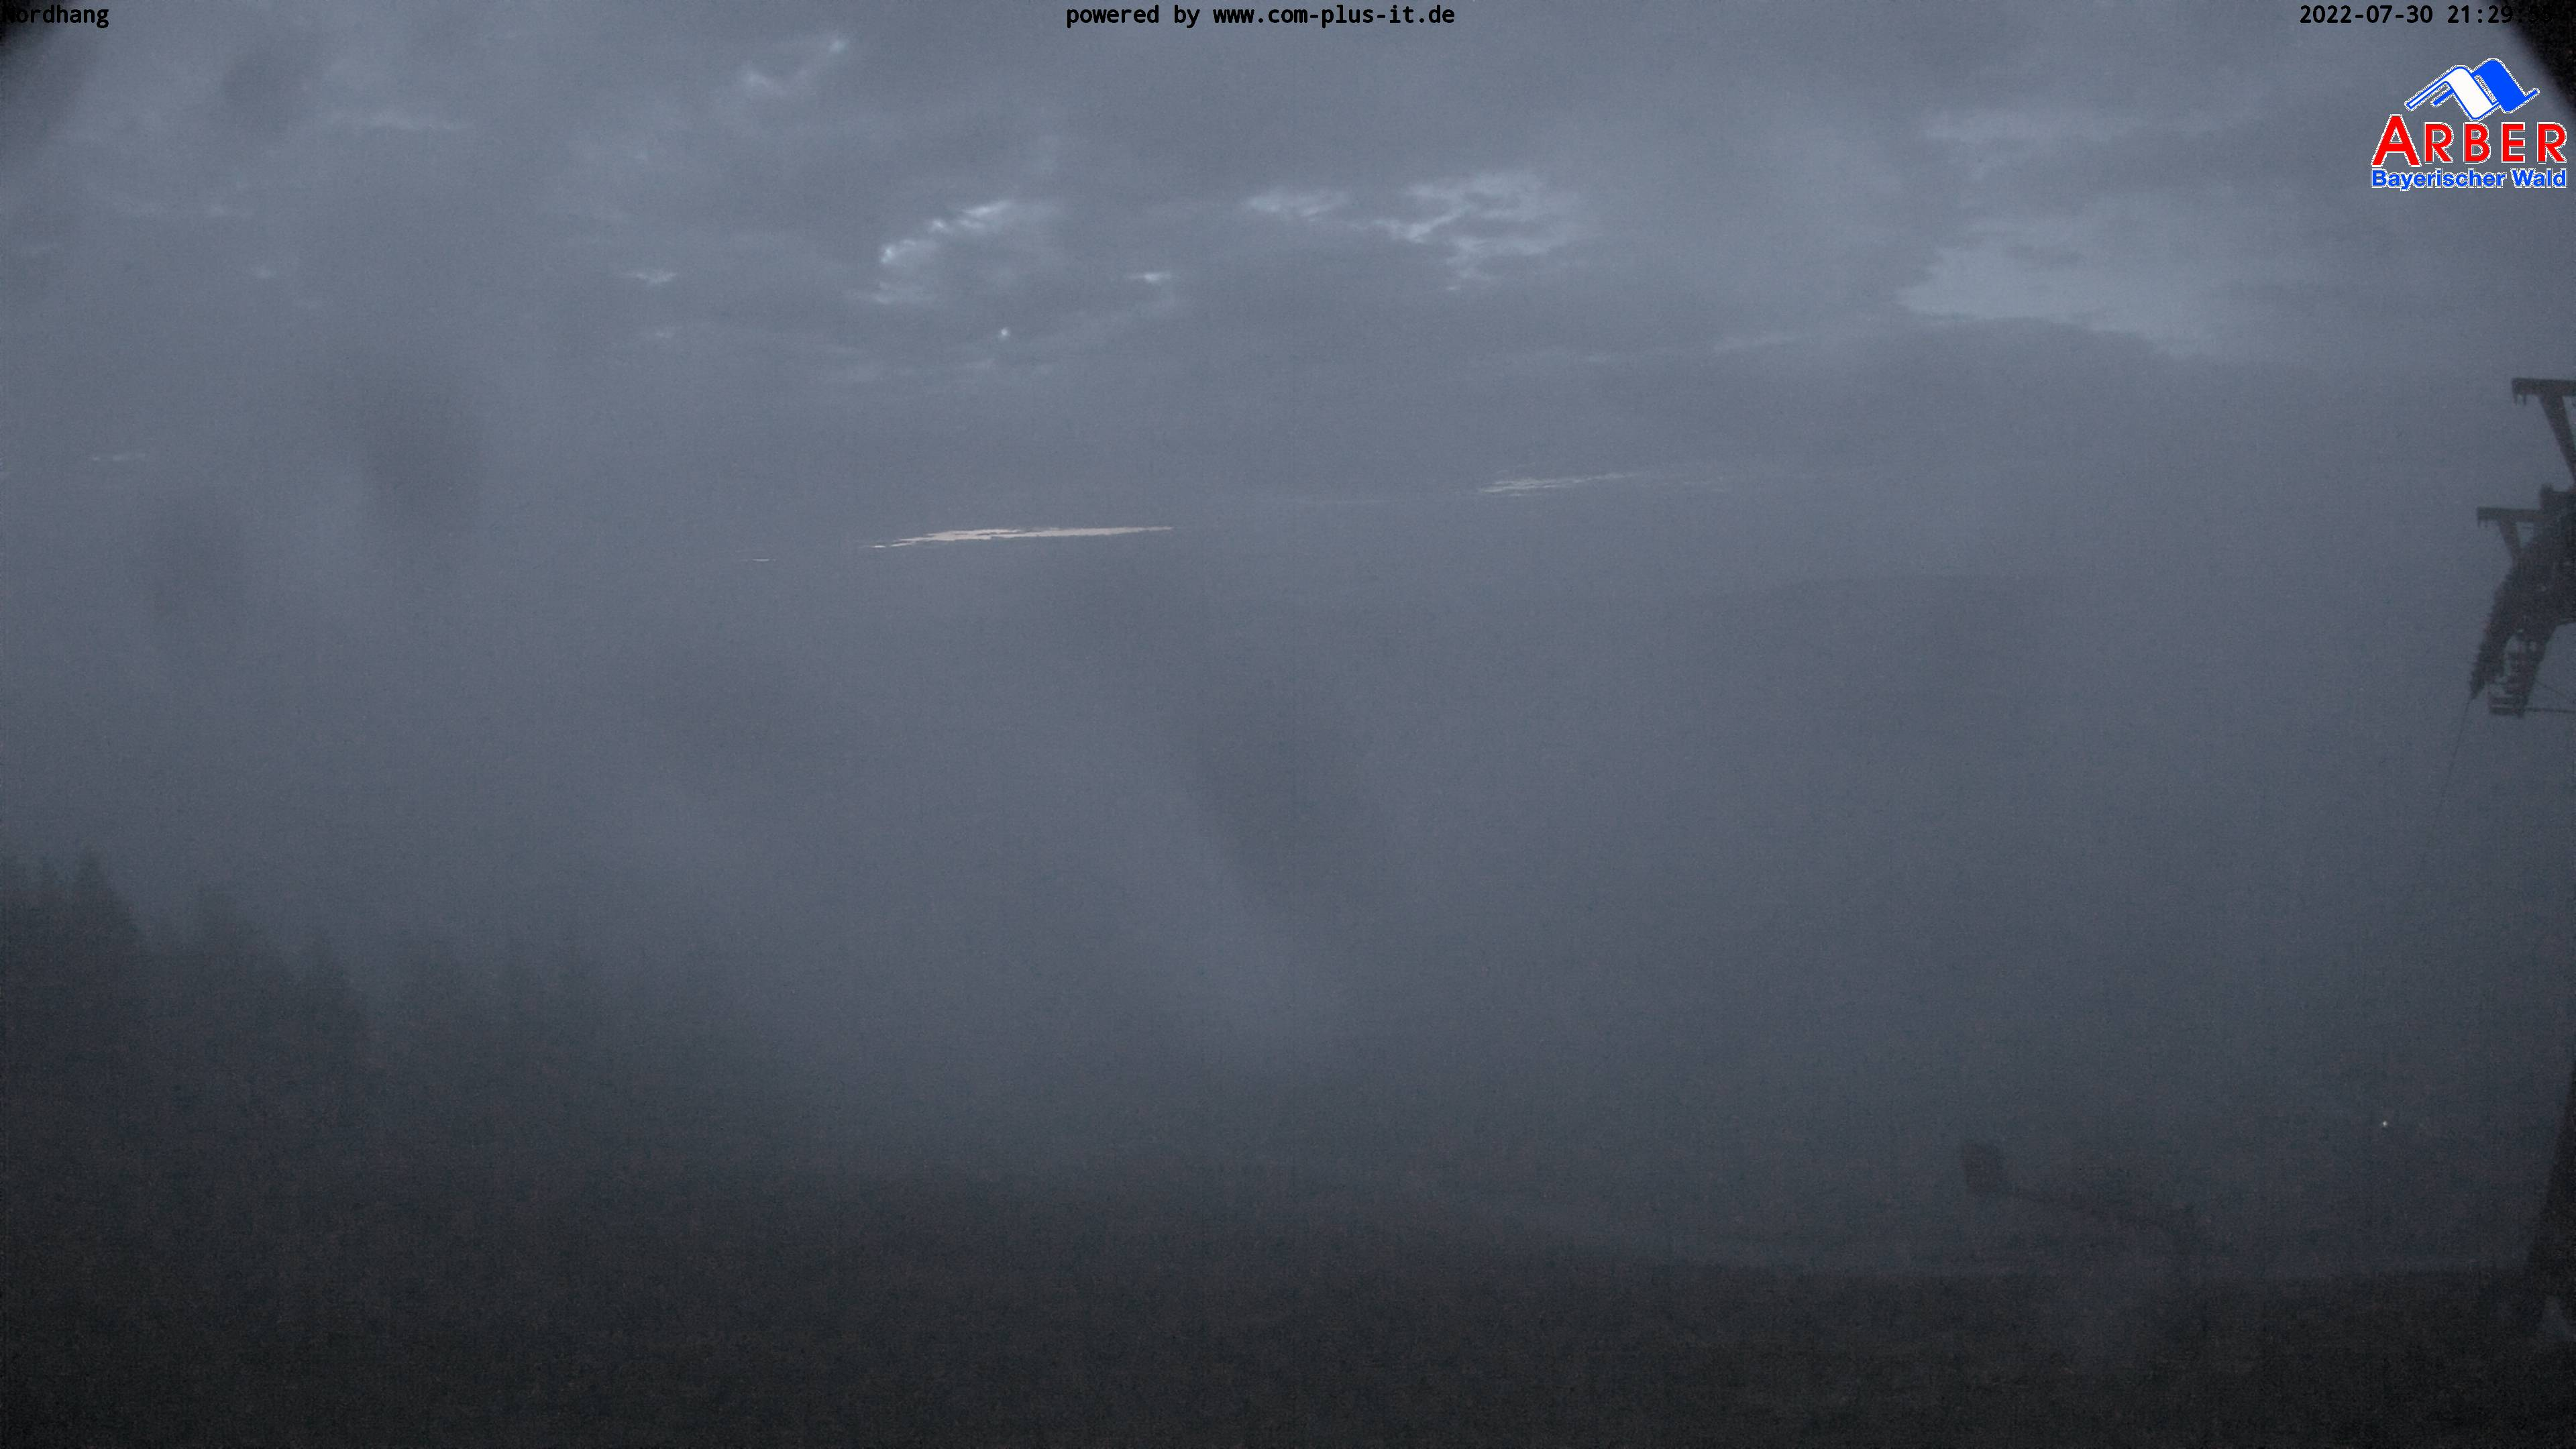 Webcam Arber Nord